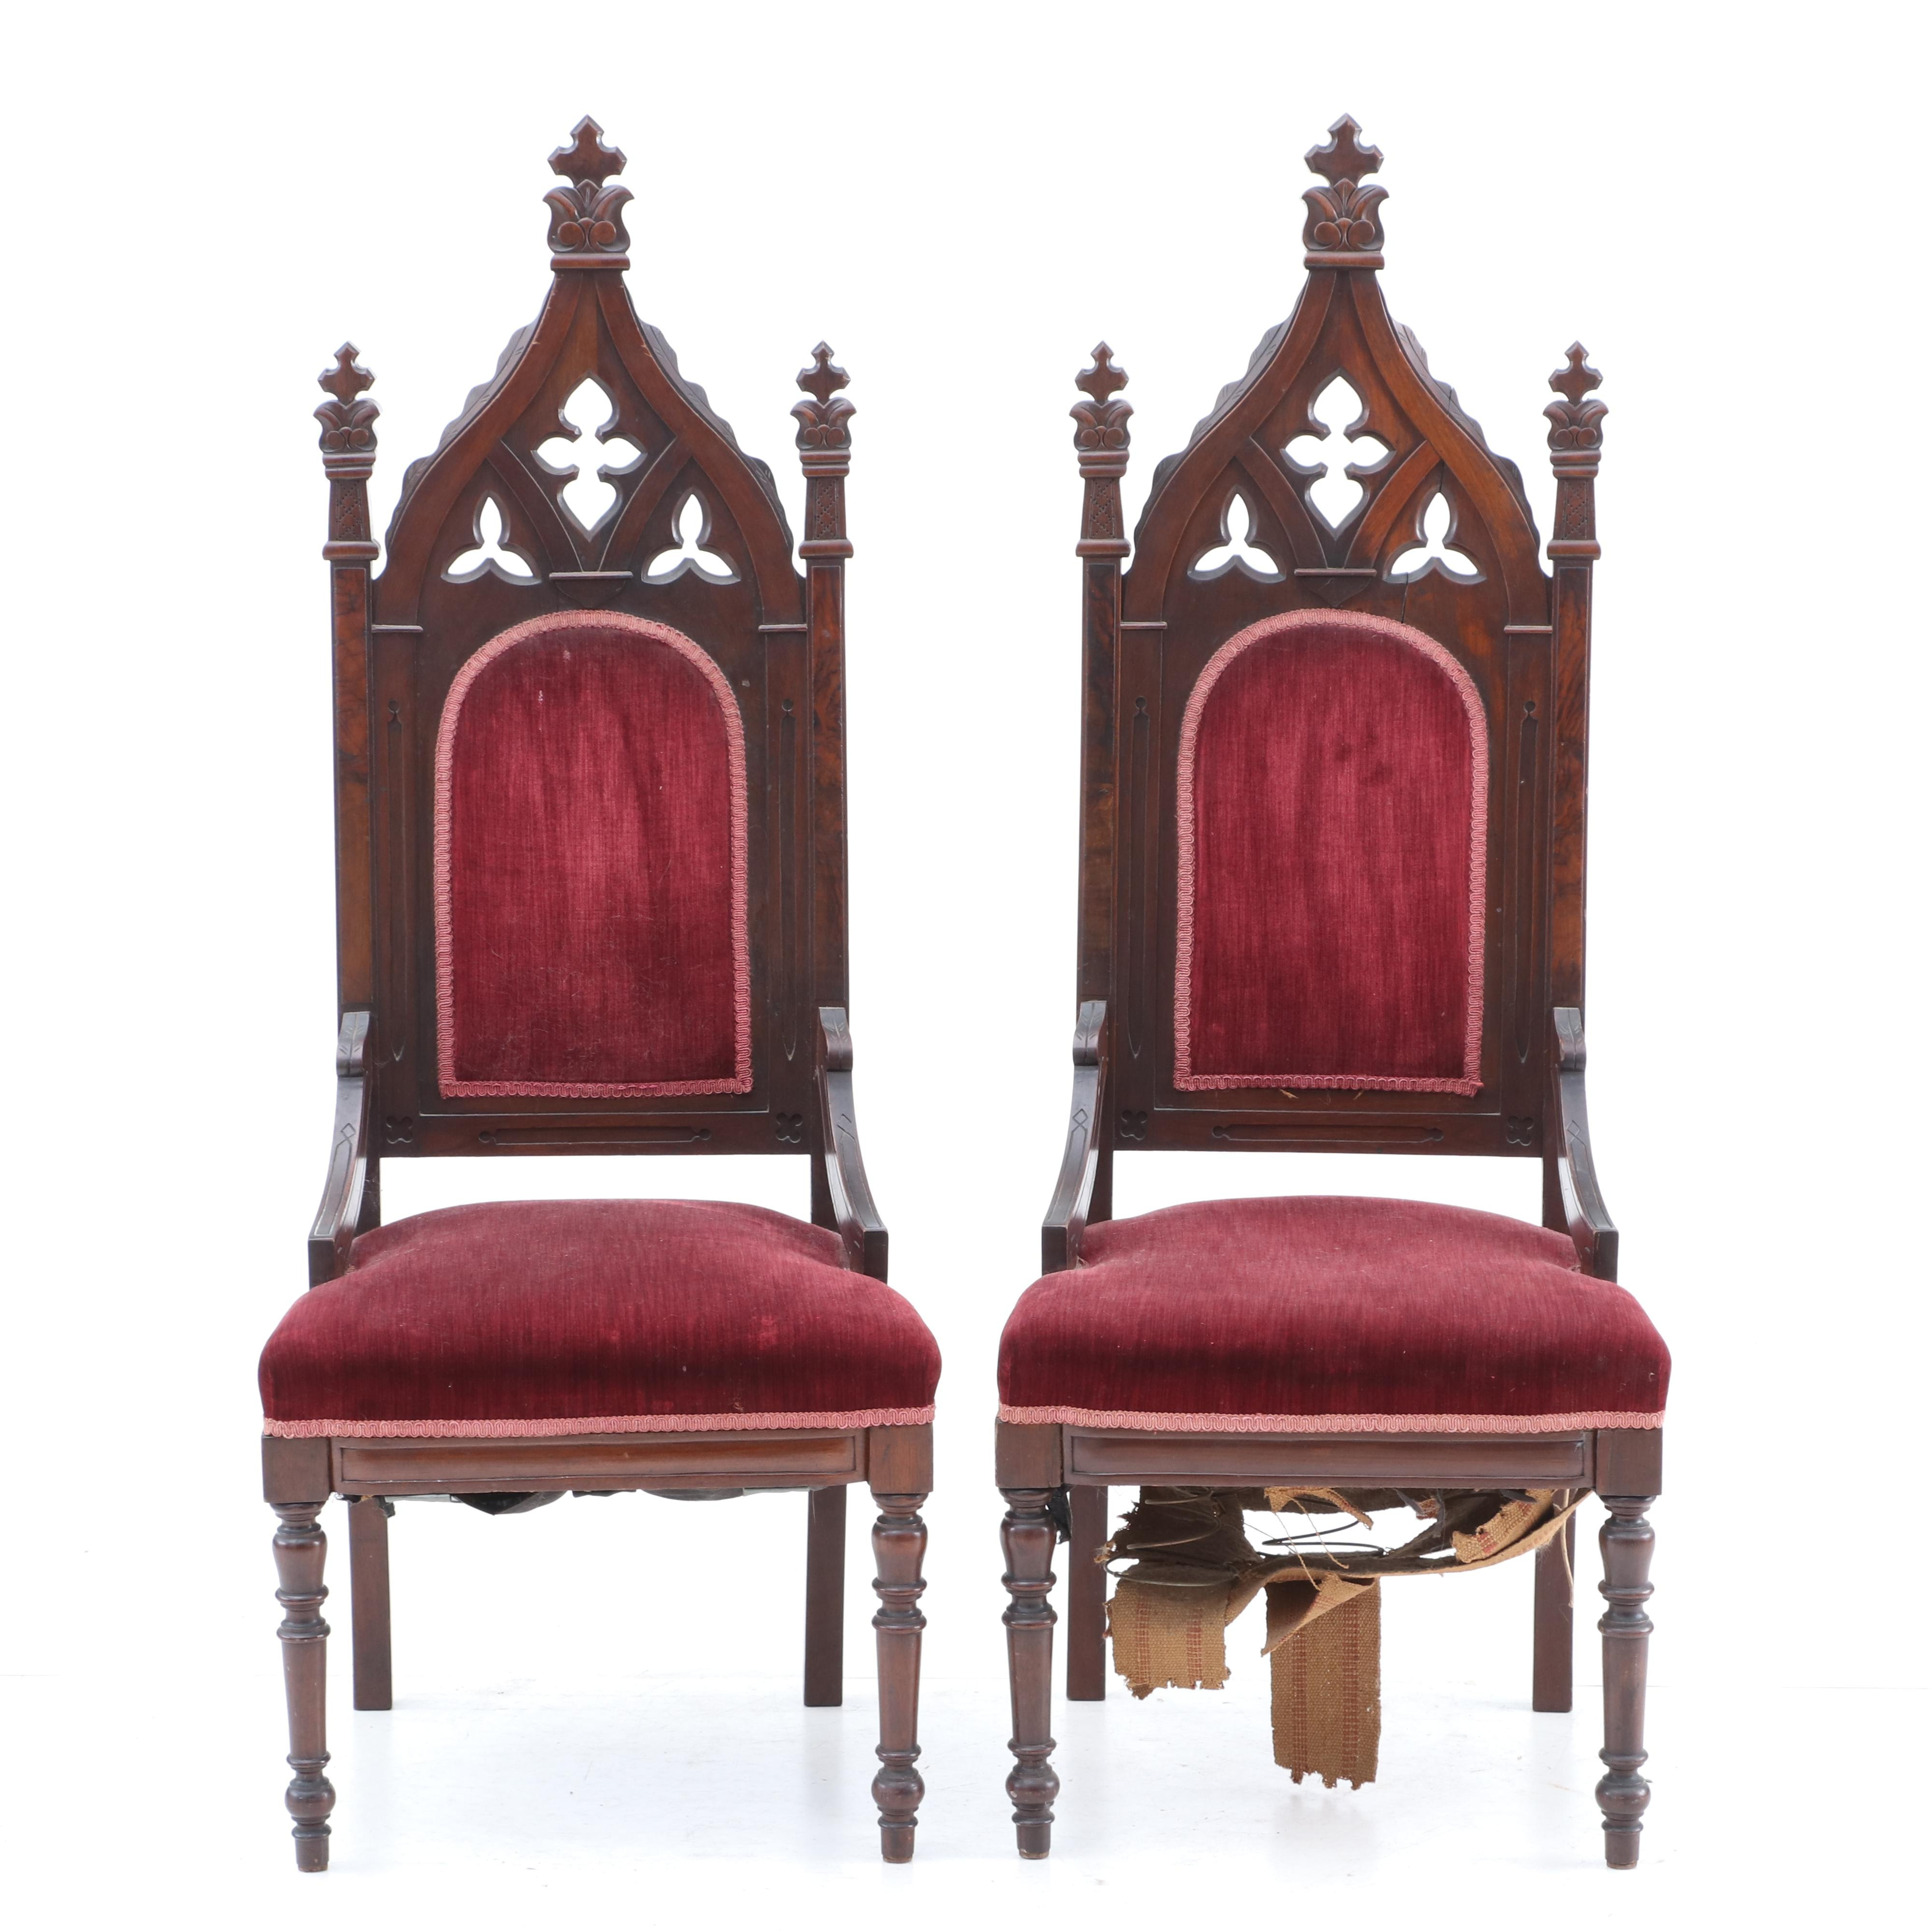 Pair of Gothic Revival Walnut Armchairs, 19th Century